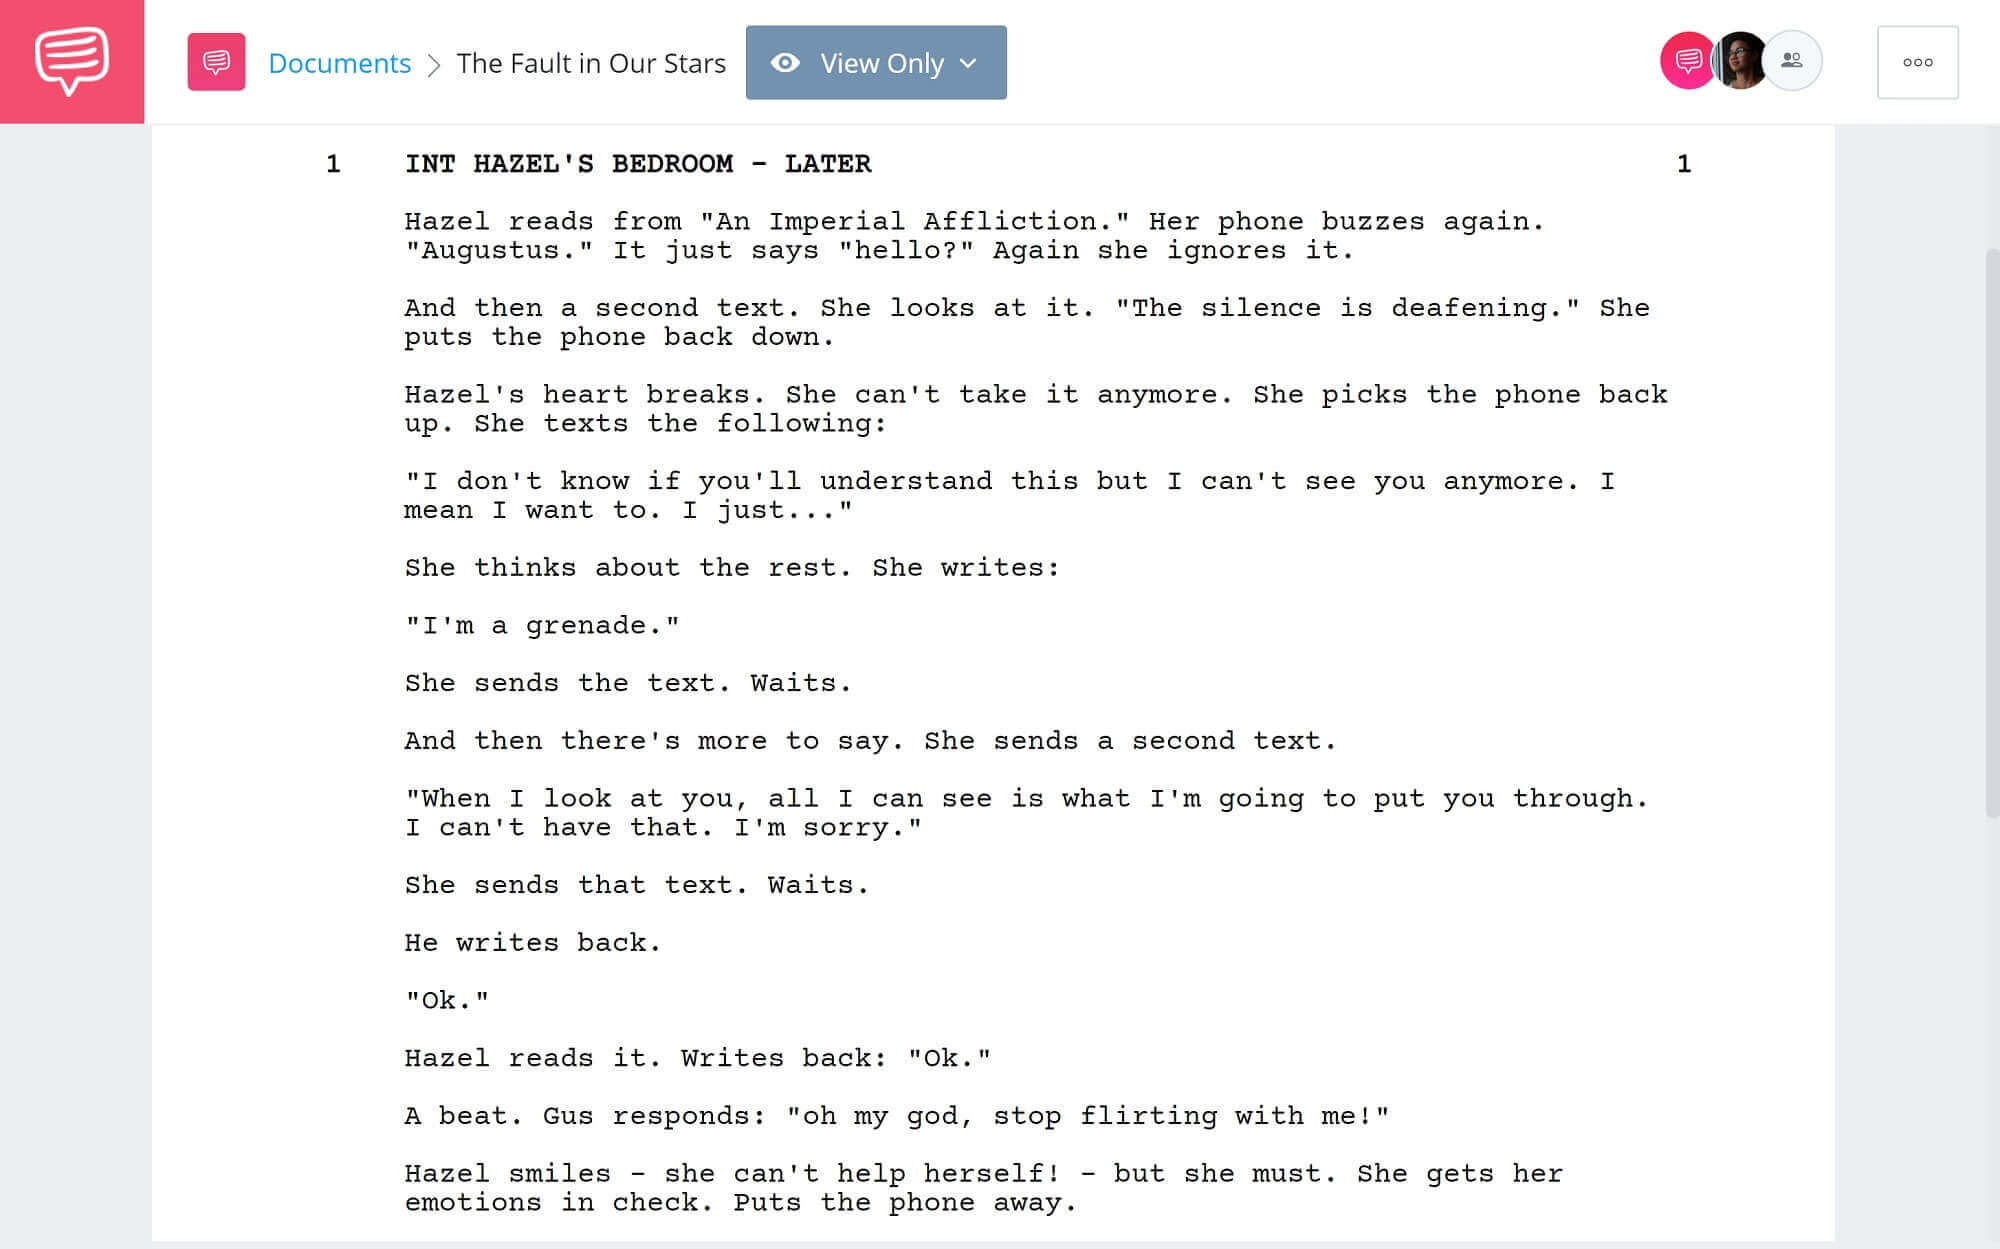 How to Write Text Messages in Screenplay - The Fault in Our Stars Example - StudioBinder Scriptwriting Software